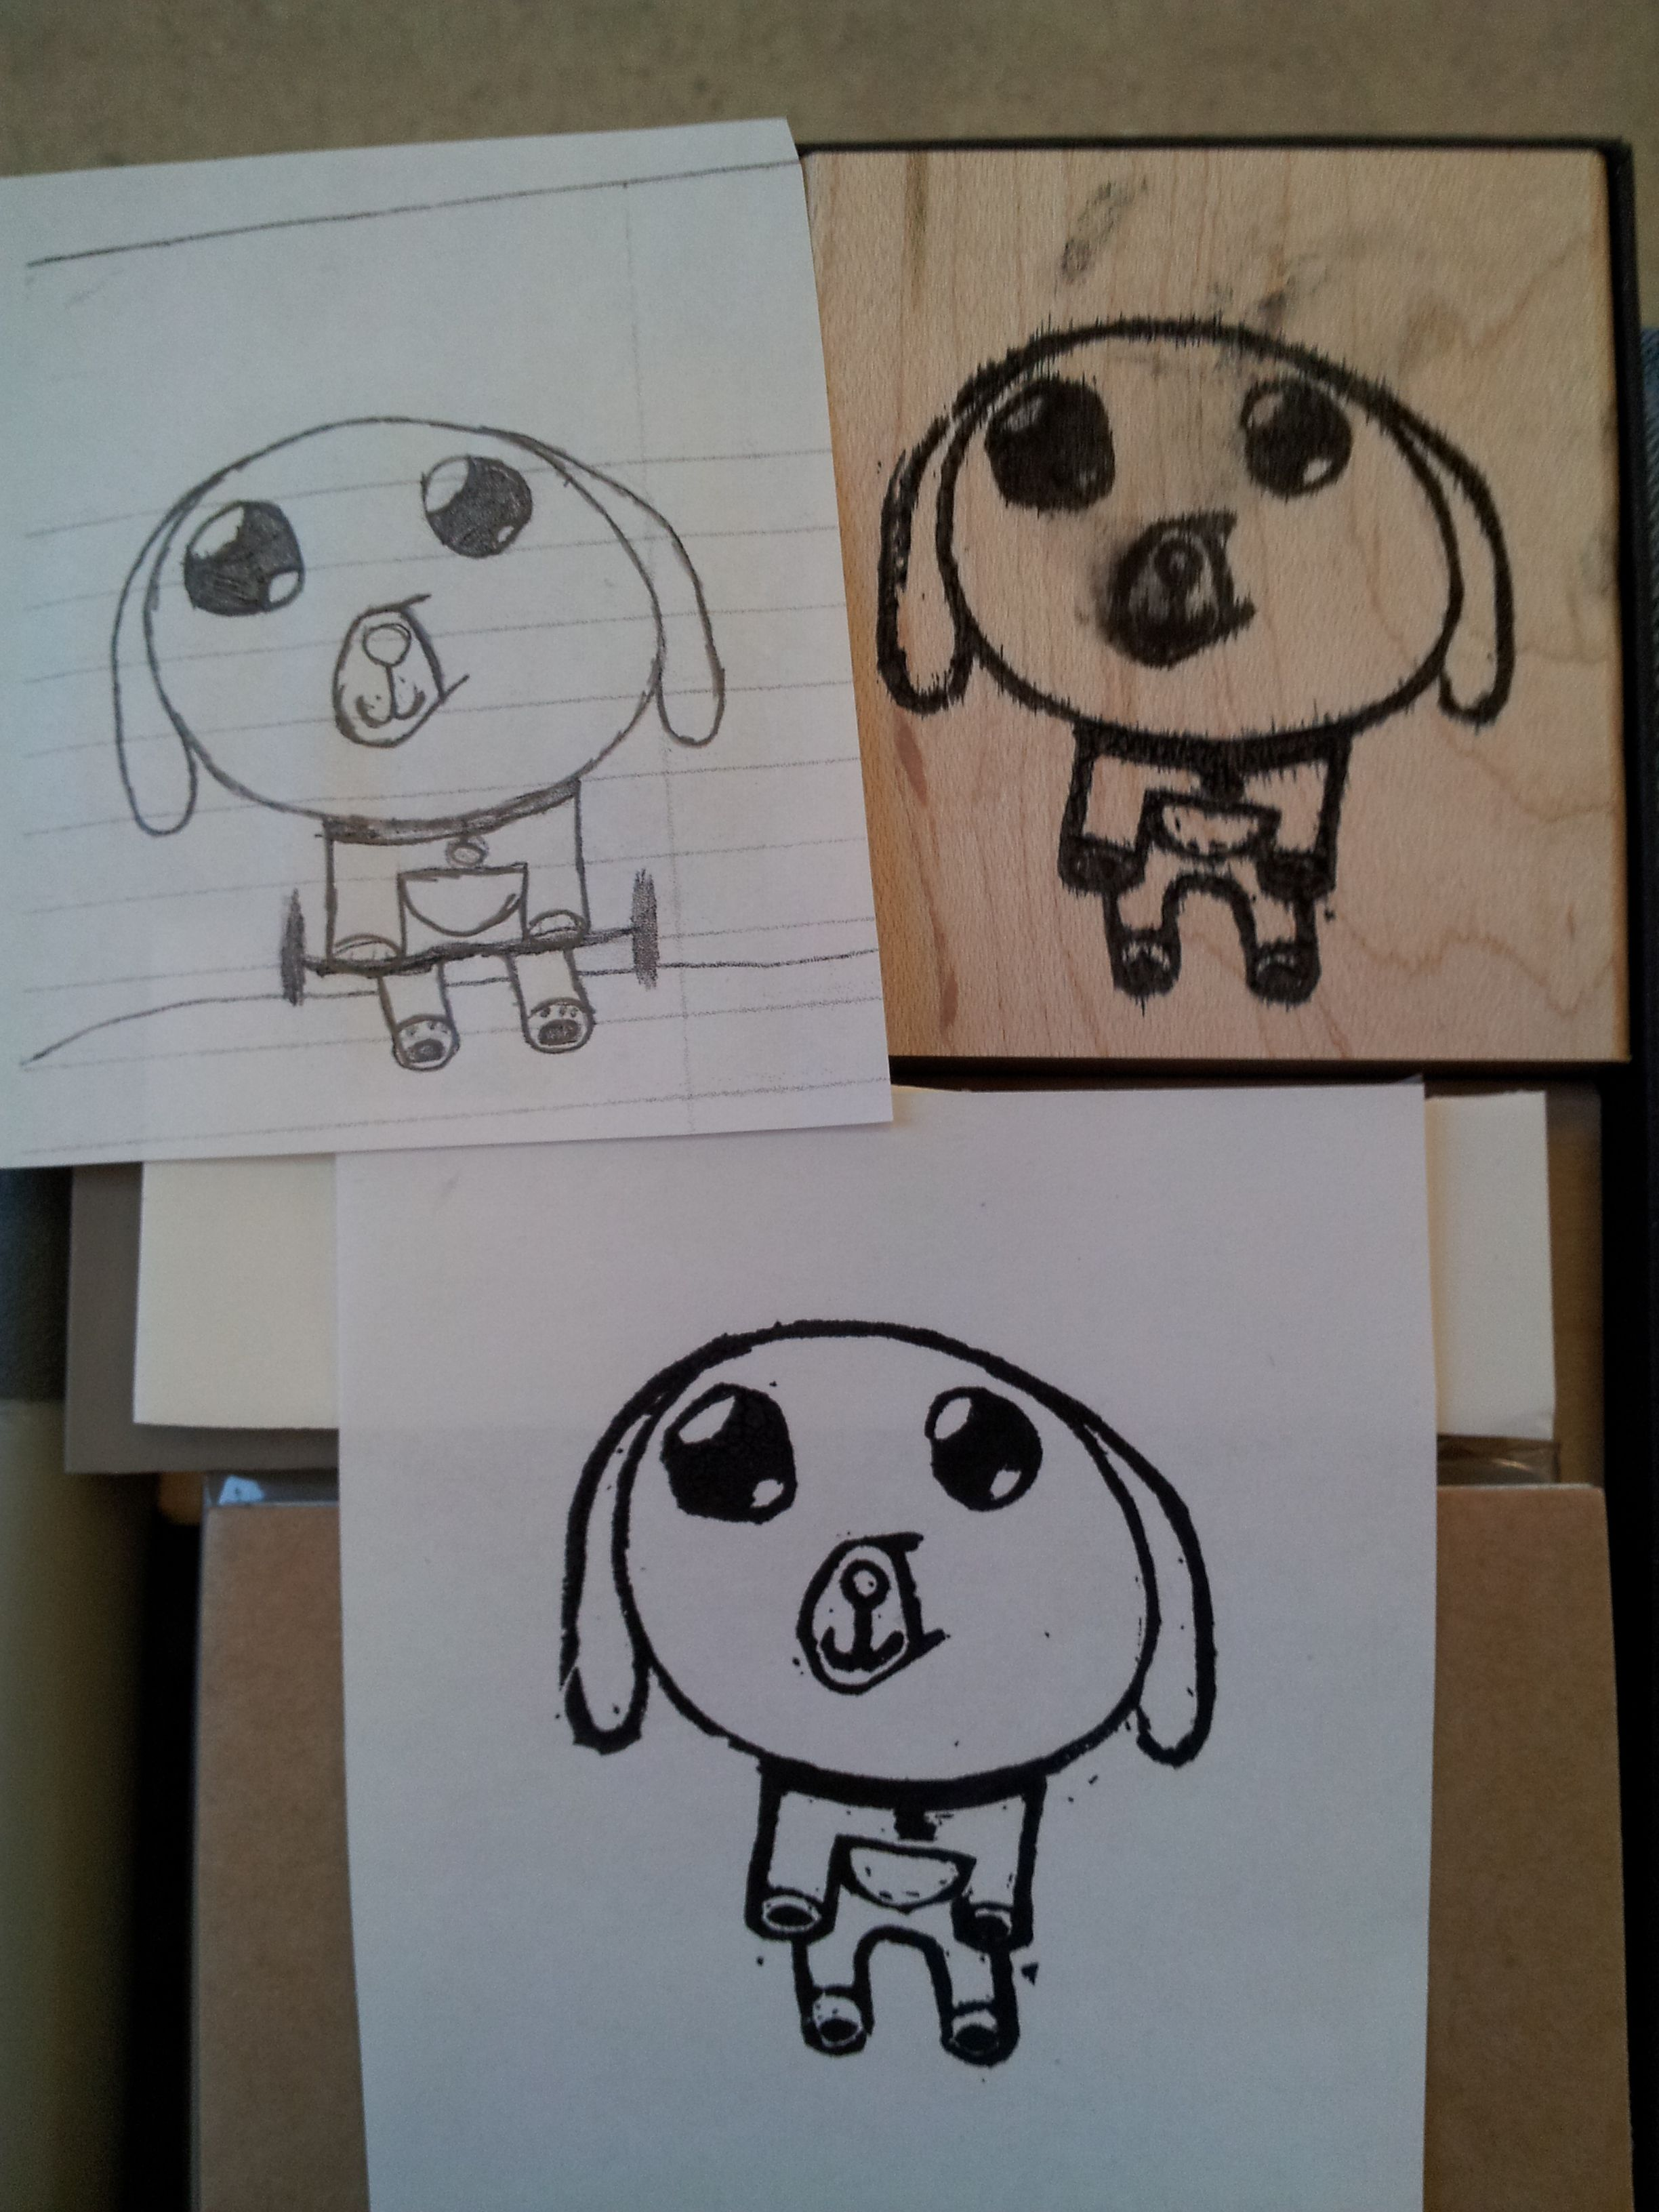 Stampin' Up! Undefined Stamp.  Faith drew me a Littlest Pet Shop character and I carved it out into a stamp for her. - Laura Hill